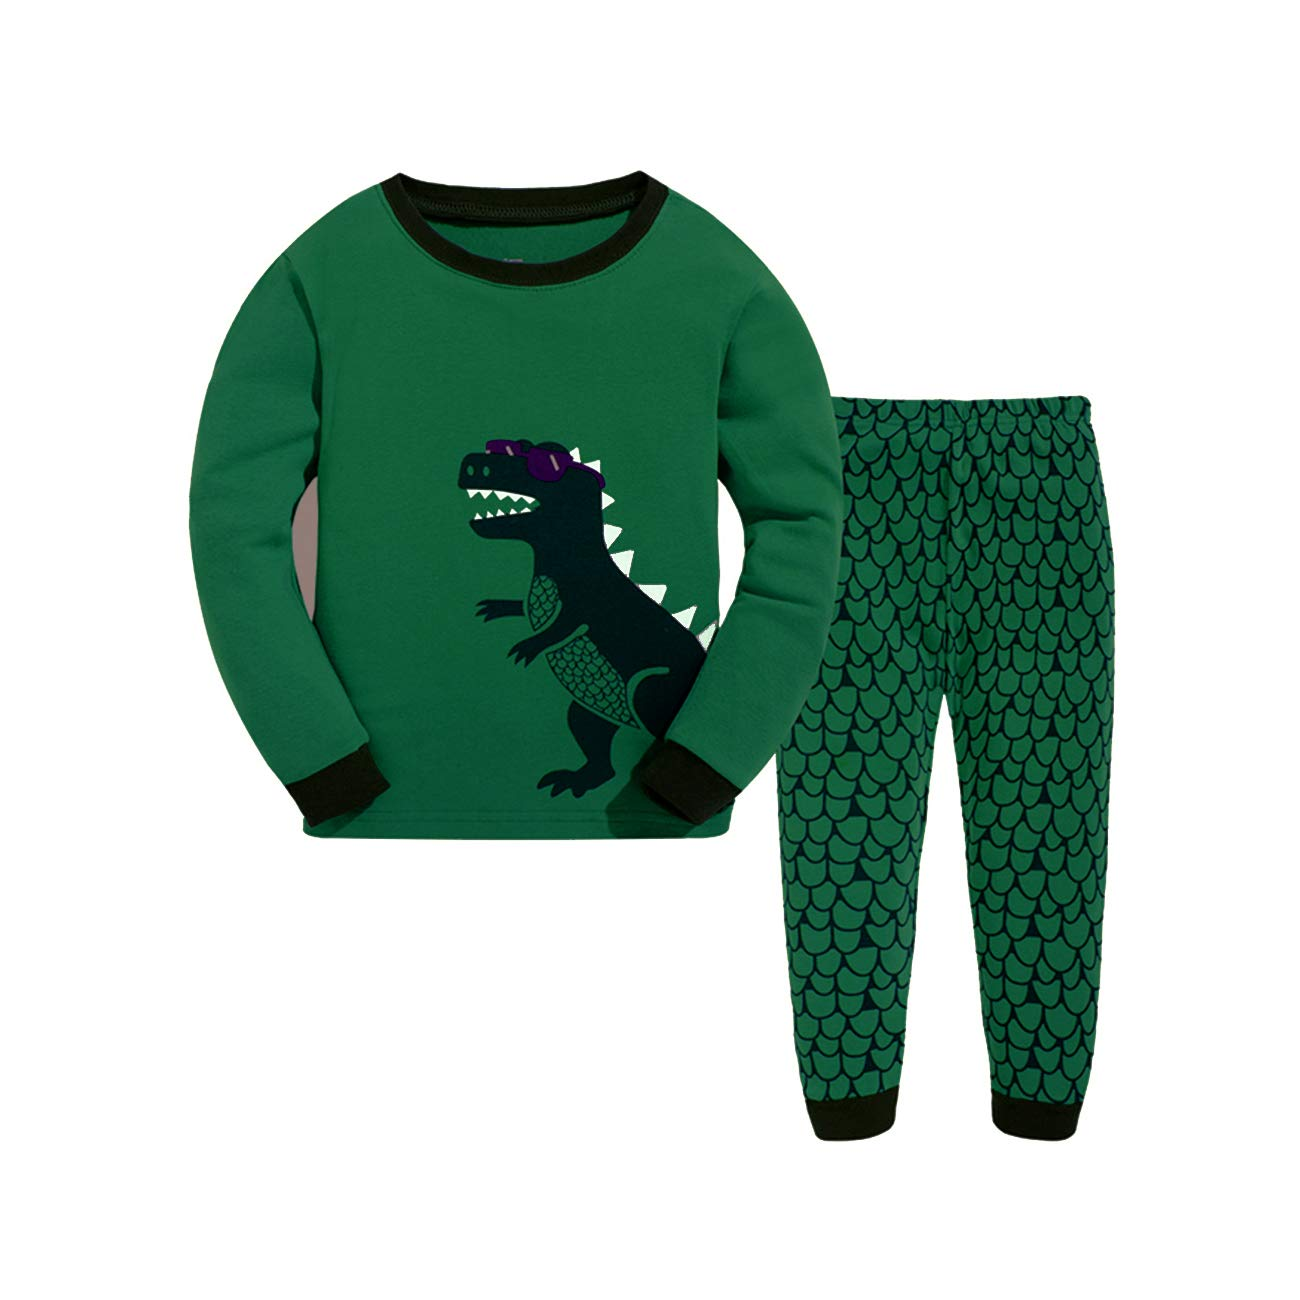 Older Boys Christmas Pyjamas Dinosaur Nightwears Sleepwears Long Sleeve Pjs Set for Kids Toddler 7-8 Years 8T